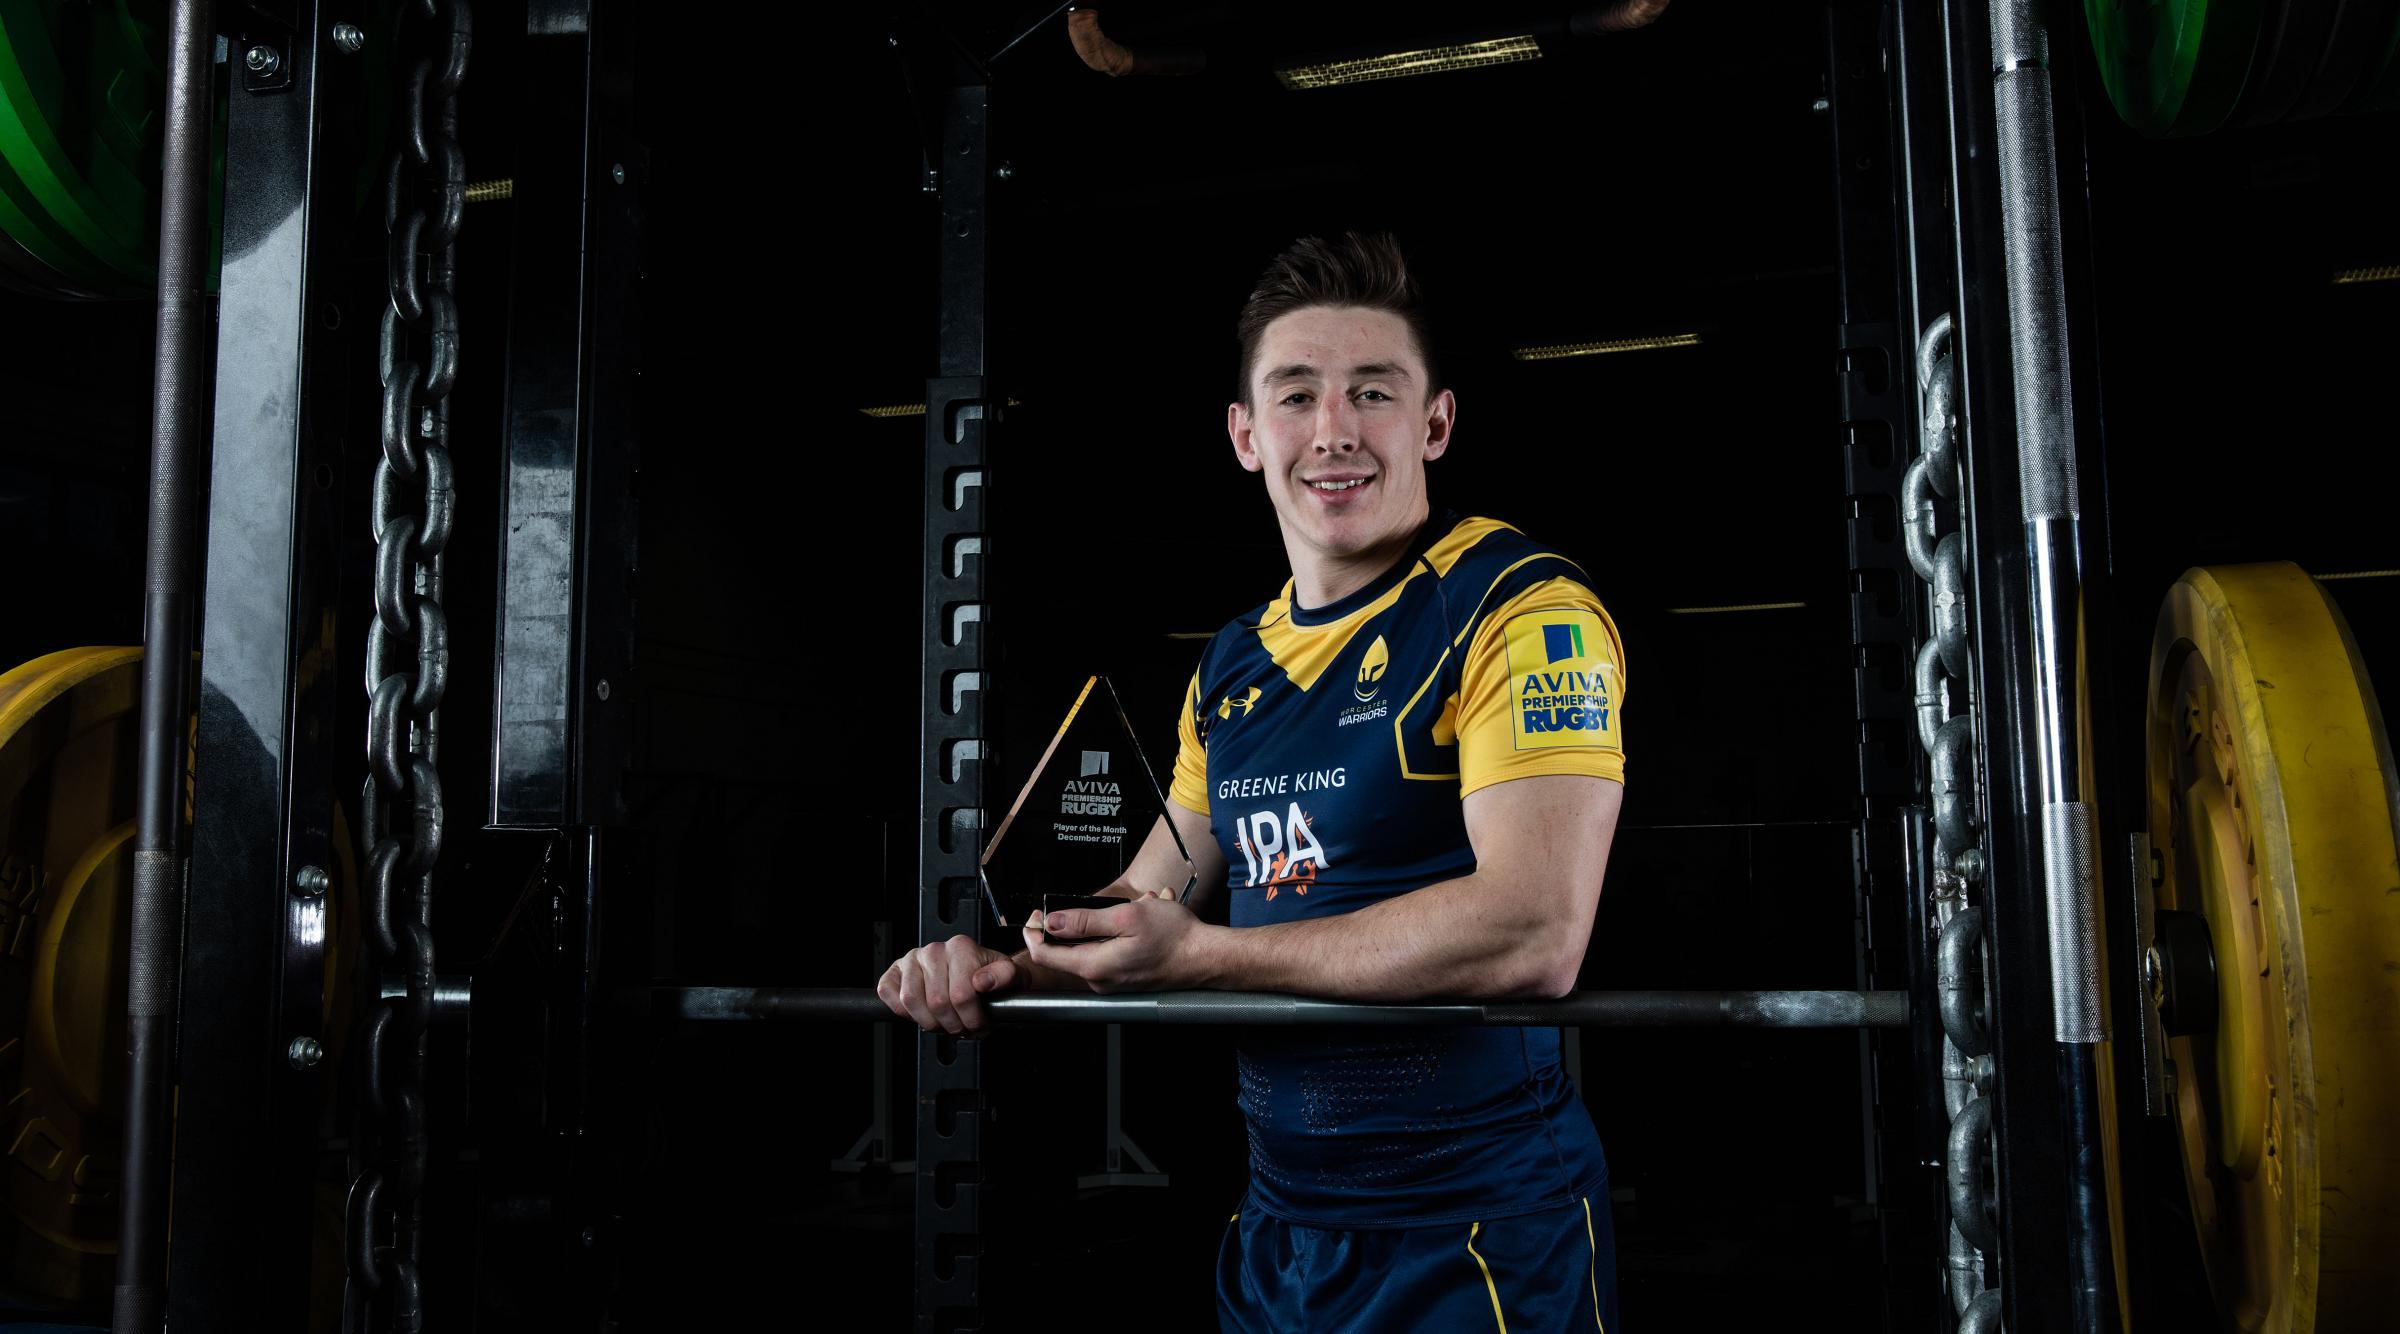 Josh Adams shows off his award. Picture: Pinnacle for Aviva